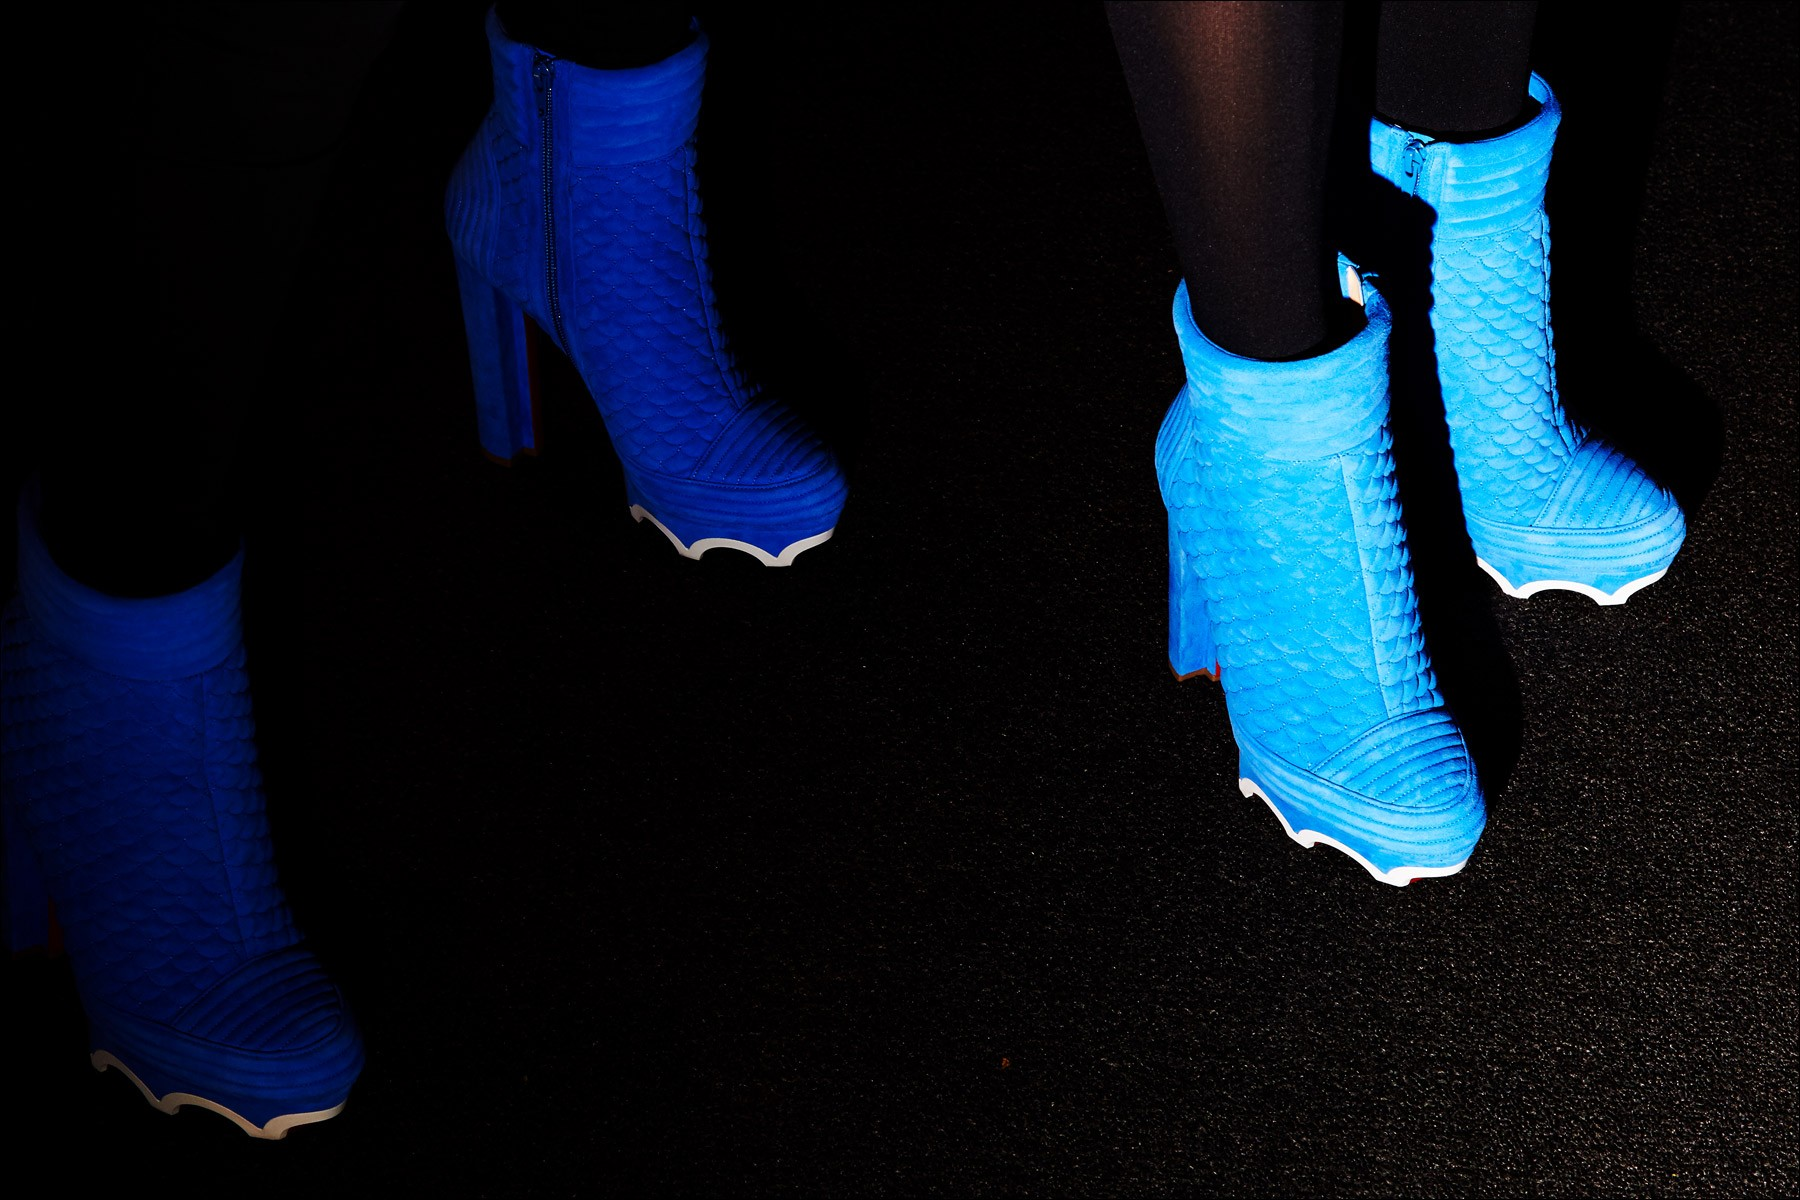 Colorful quilted Chris tian Louboutin boots backstage at The Blonds S/S18 show. Photographed by Alexander Thompson for Ponyboy magazine NY.